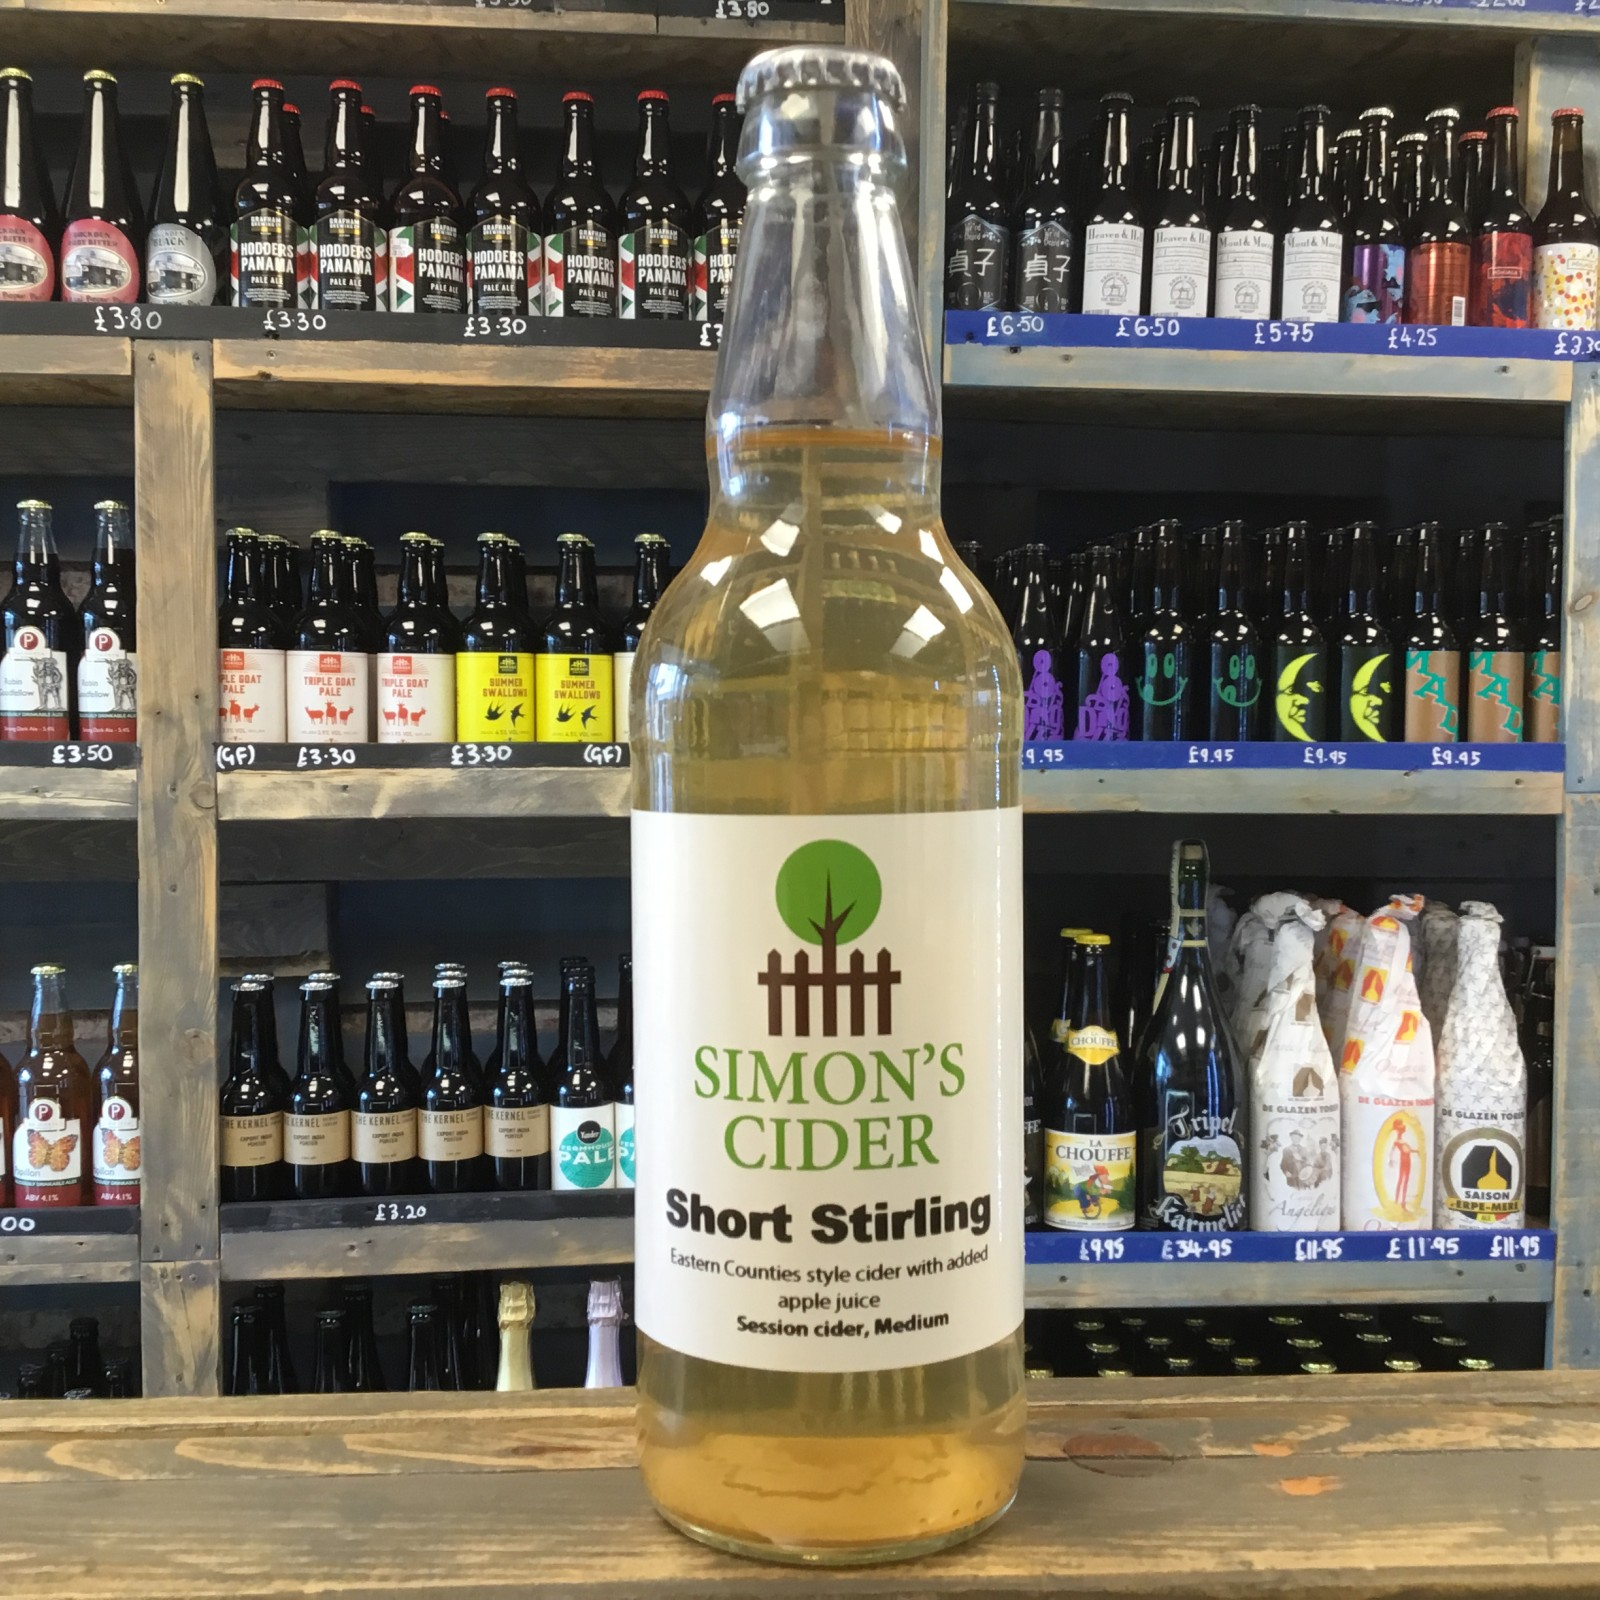 Short Stirling 4.5% 500ml Simon's Cider